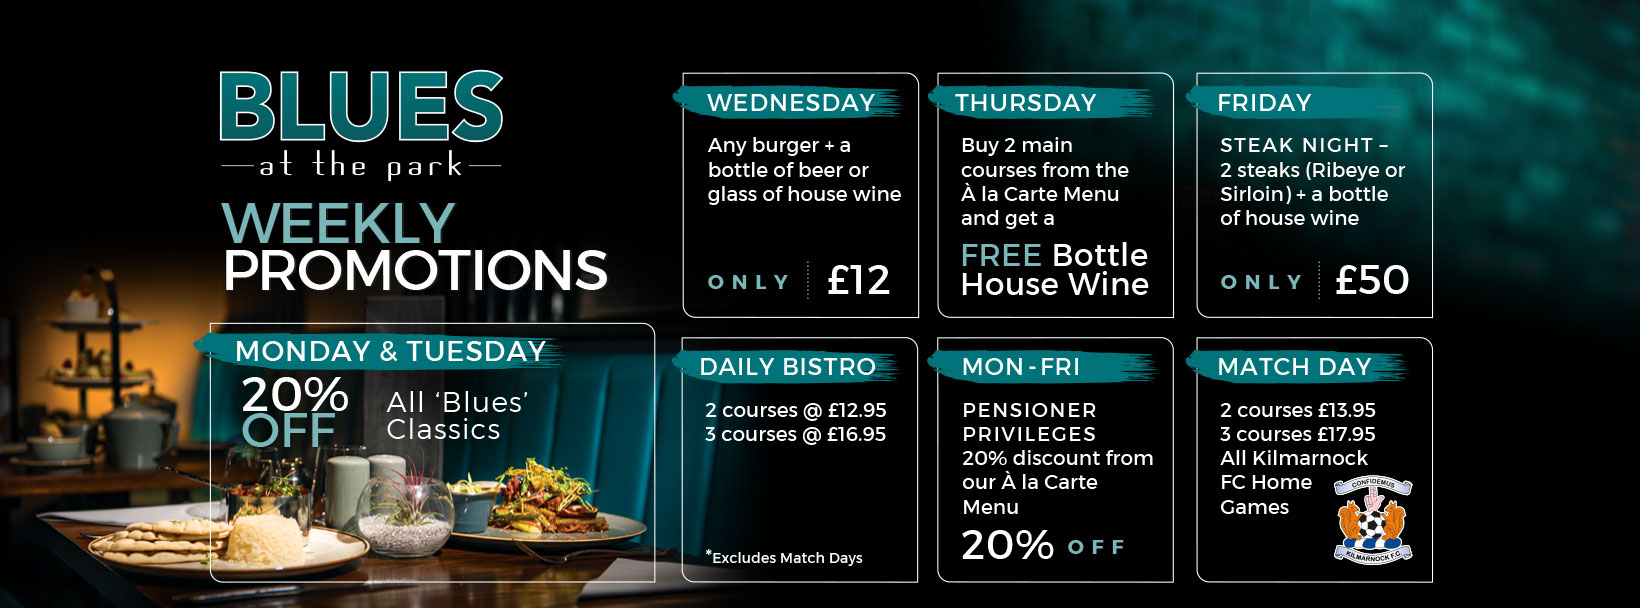 Weekly Promotions at the Park Hotel Kilmarnock